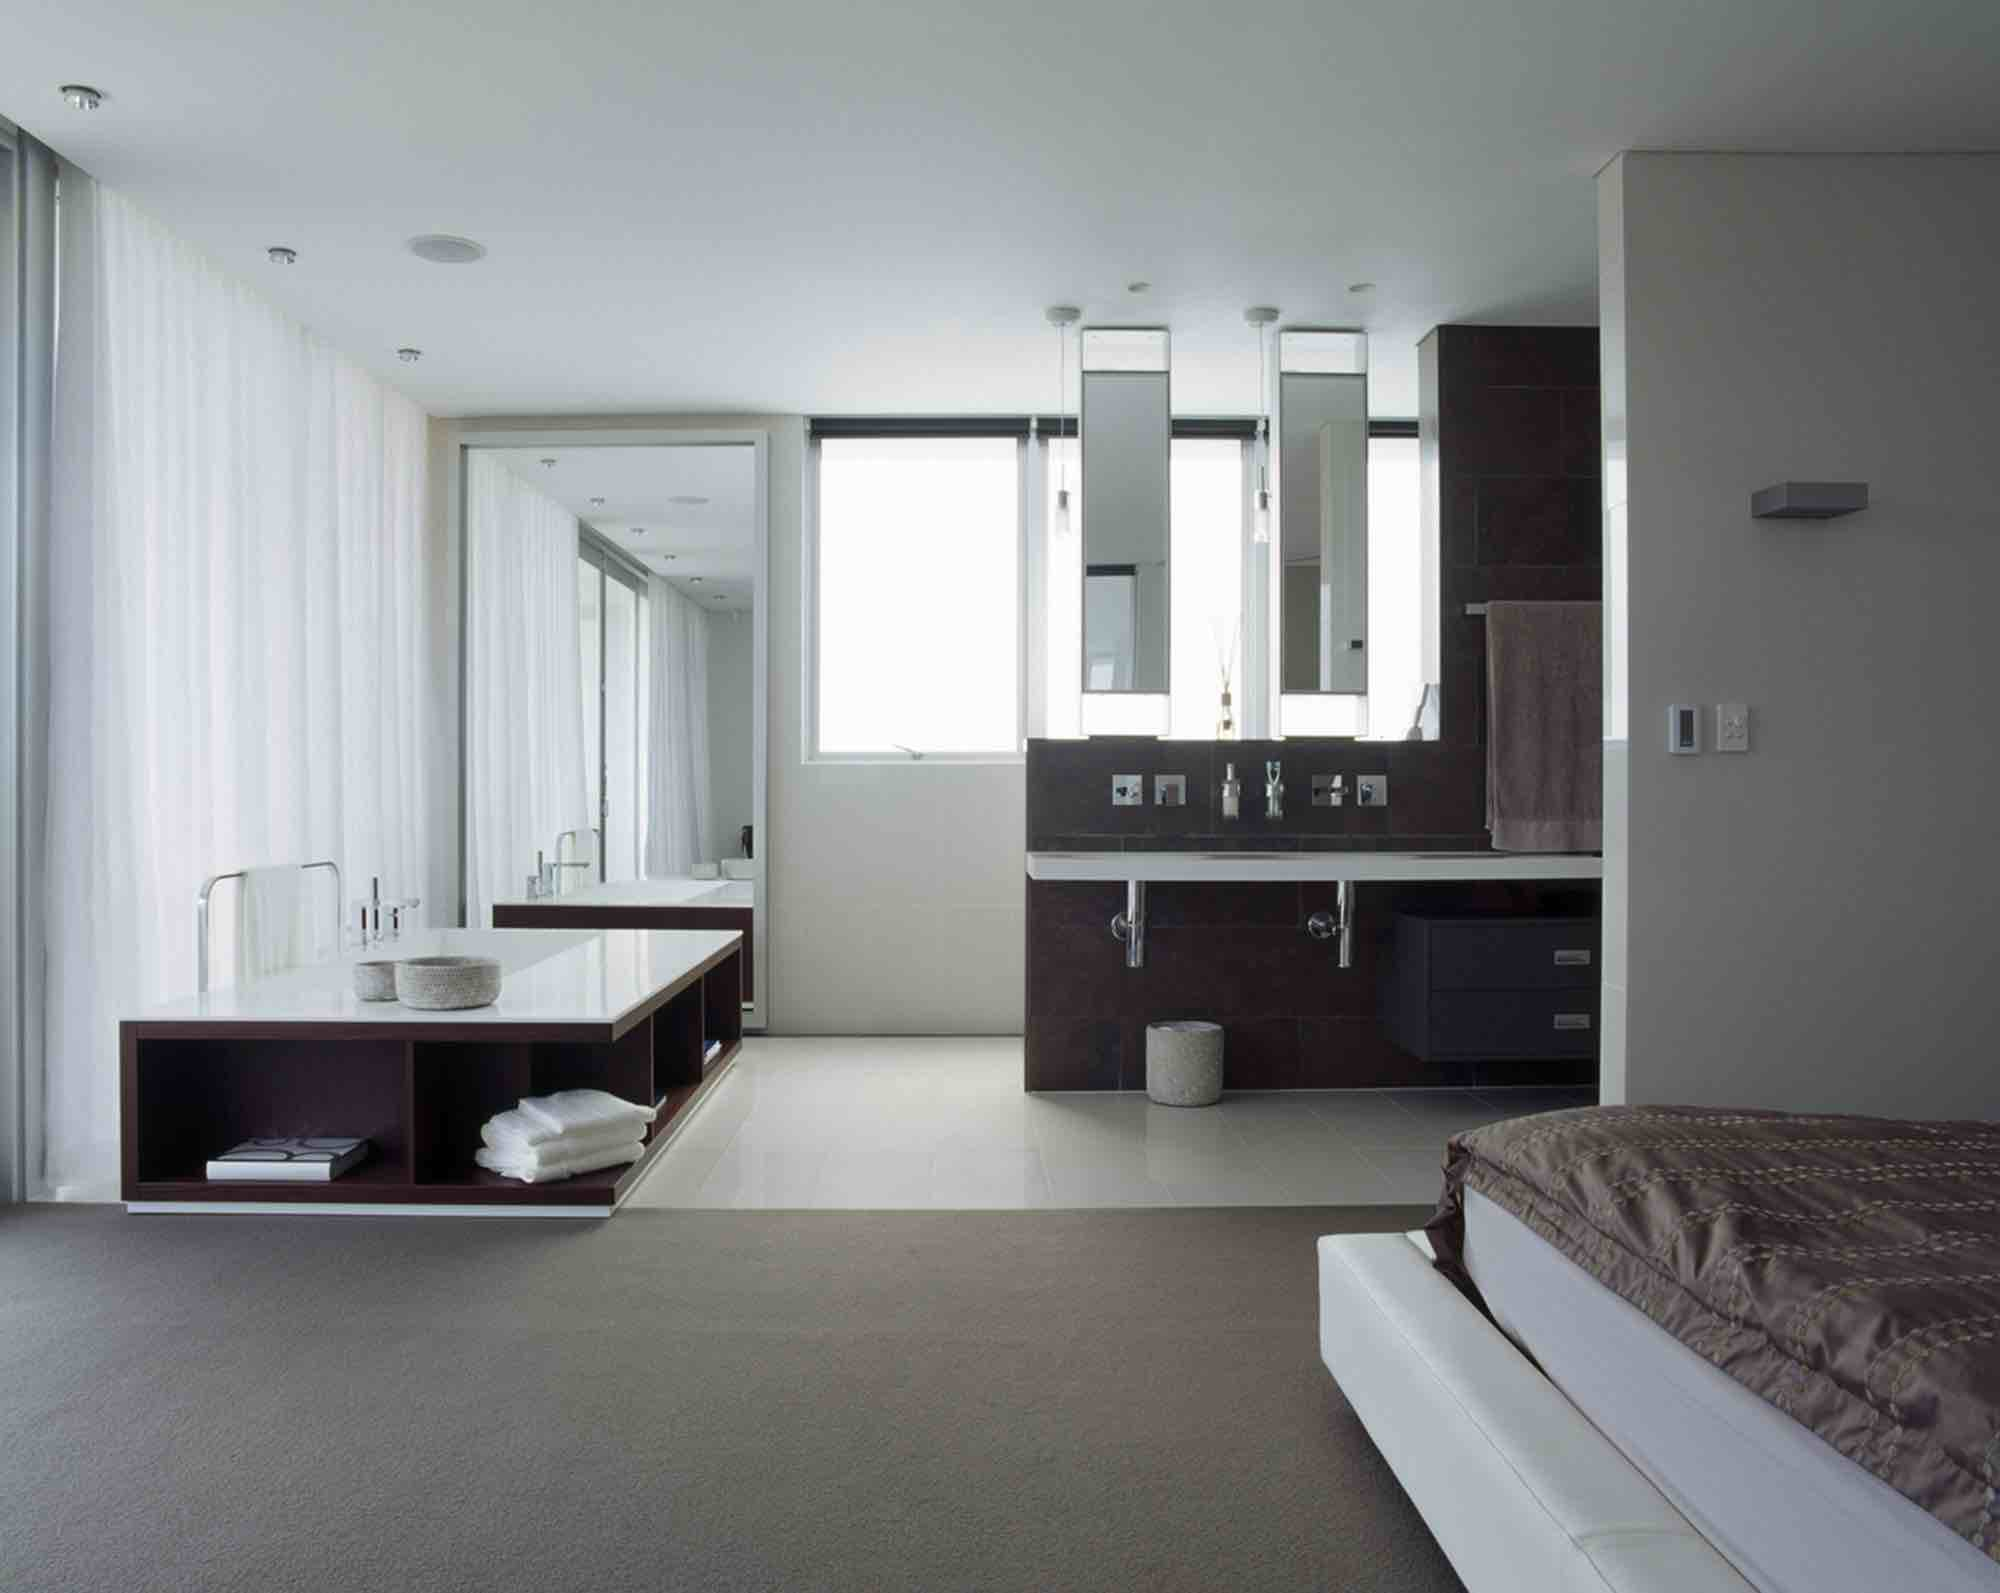 minosa-design-open-plan-ensuite-parents-retreat-dover-heights-portland-st-scooped-double-rifra-freestanding-corian-bath-shear-curtain-bathroom-03